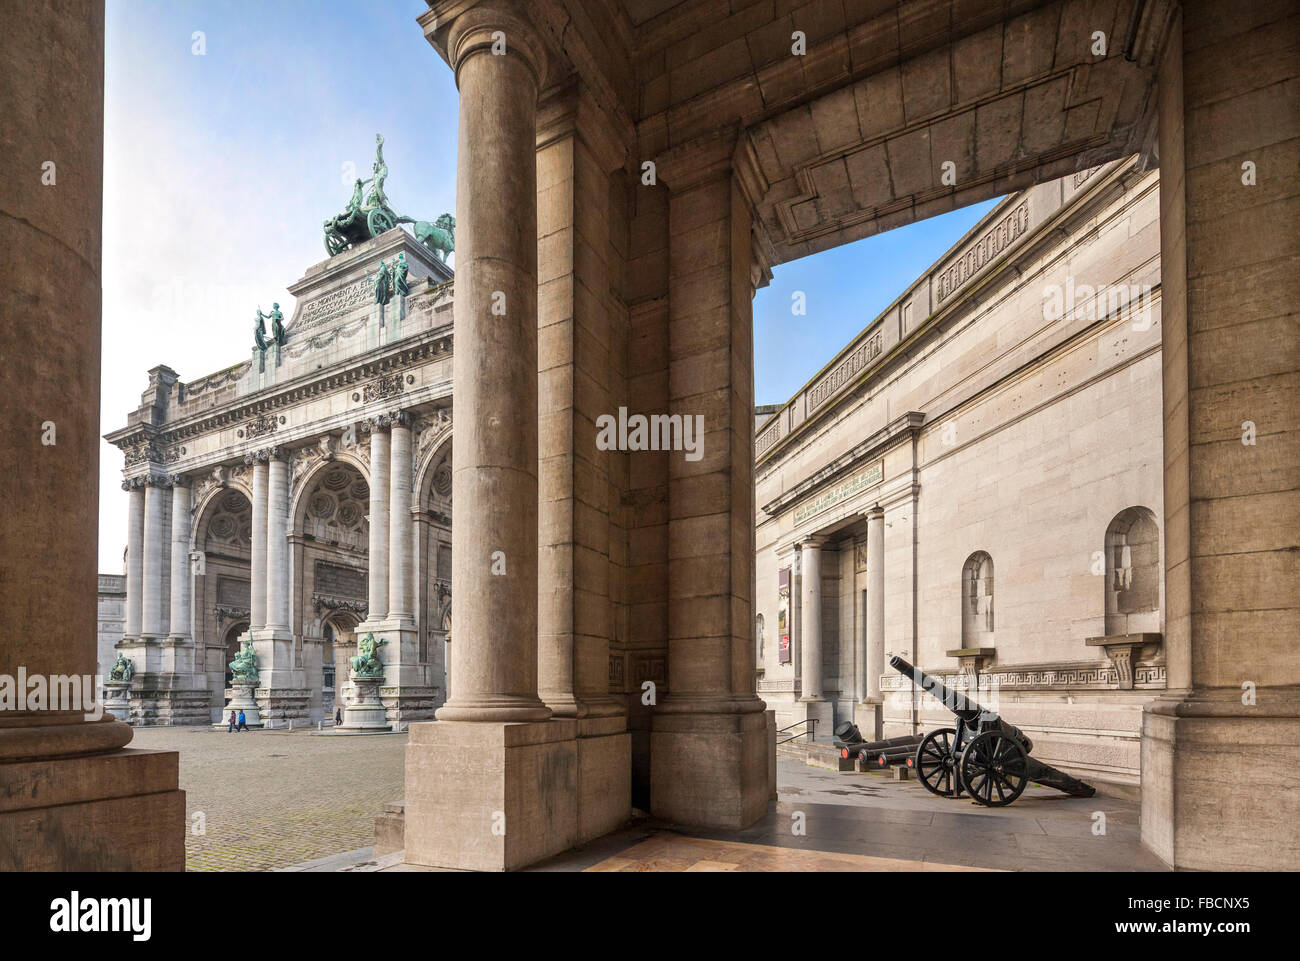 Brussels entrance of the War Museum and Jubilee Triumphal Arch in the Cinquantenaire or Jubilee Park - Stock Image